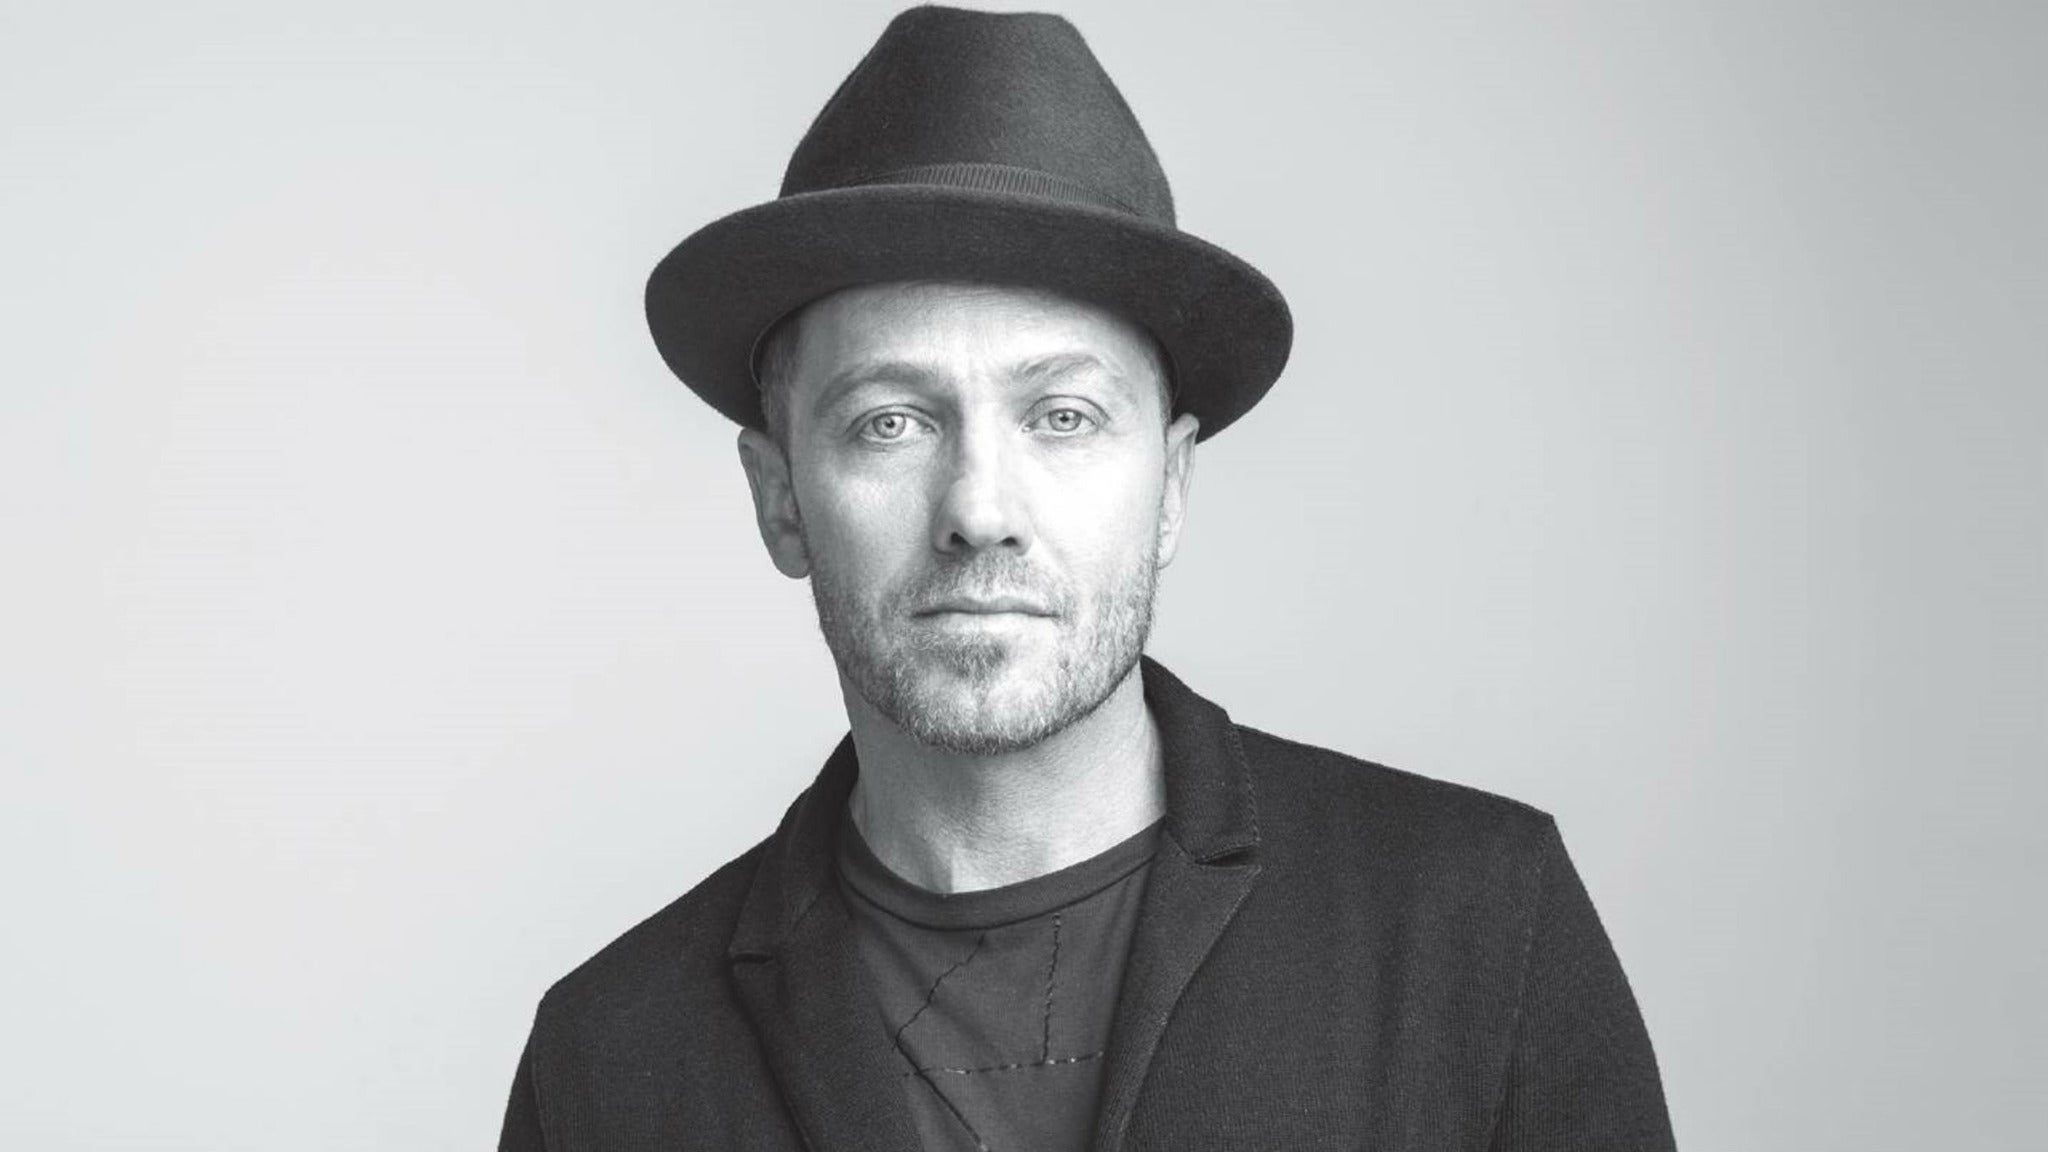 TOBYMAC Hits Deep Tour presale code for early tickets in Boise